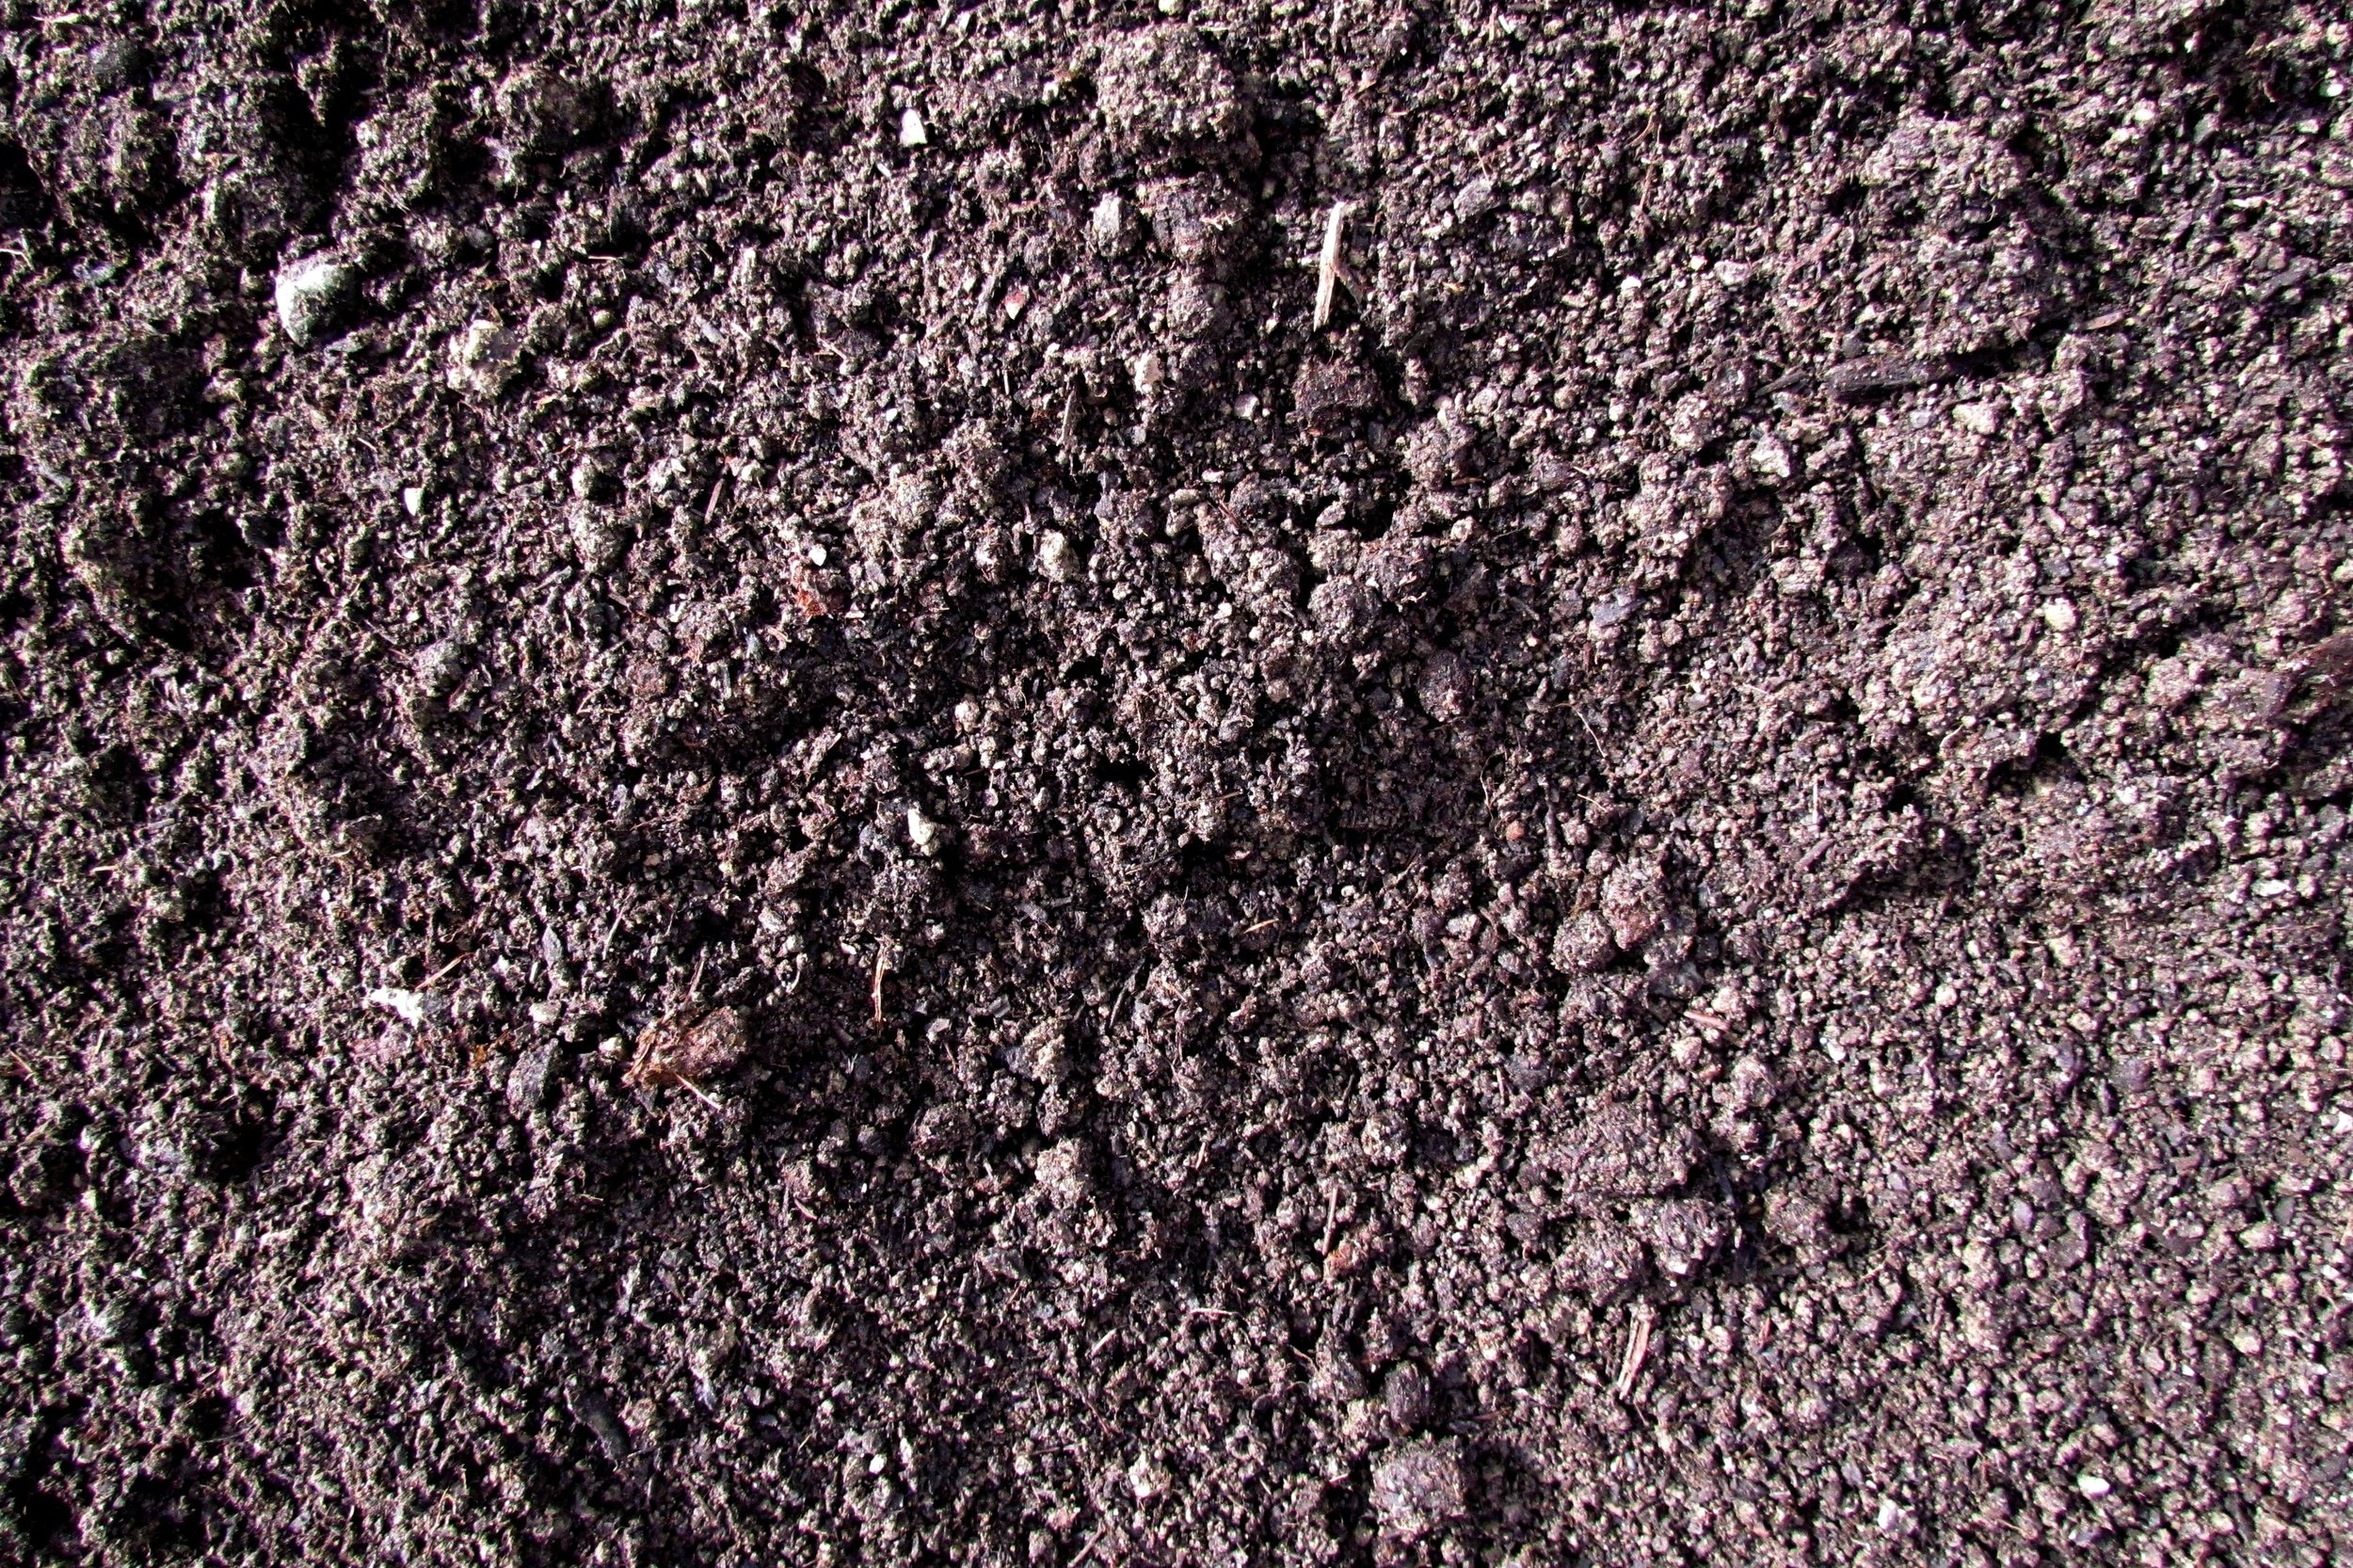 3. SUPERSOIL - A 50/50 mix of our top-selling BlenBio Compost & 10mm Screened Topsoil that works especially well in vegetable gardens etc as a great base for growing things. Perfect for topping off your filled raised garden bed with.Check our soil range here!